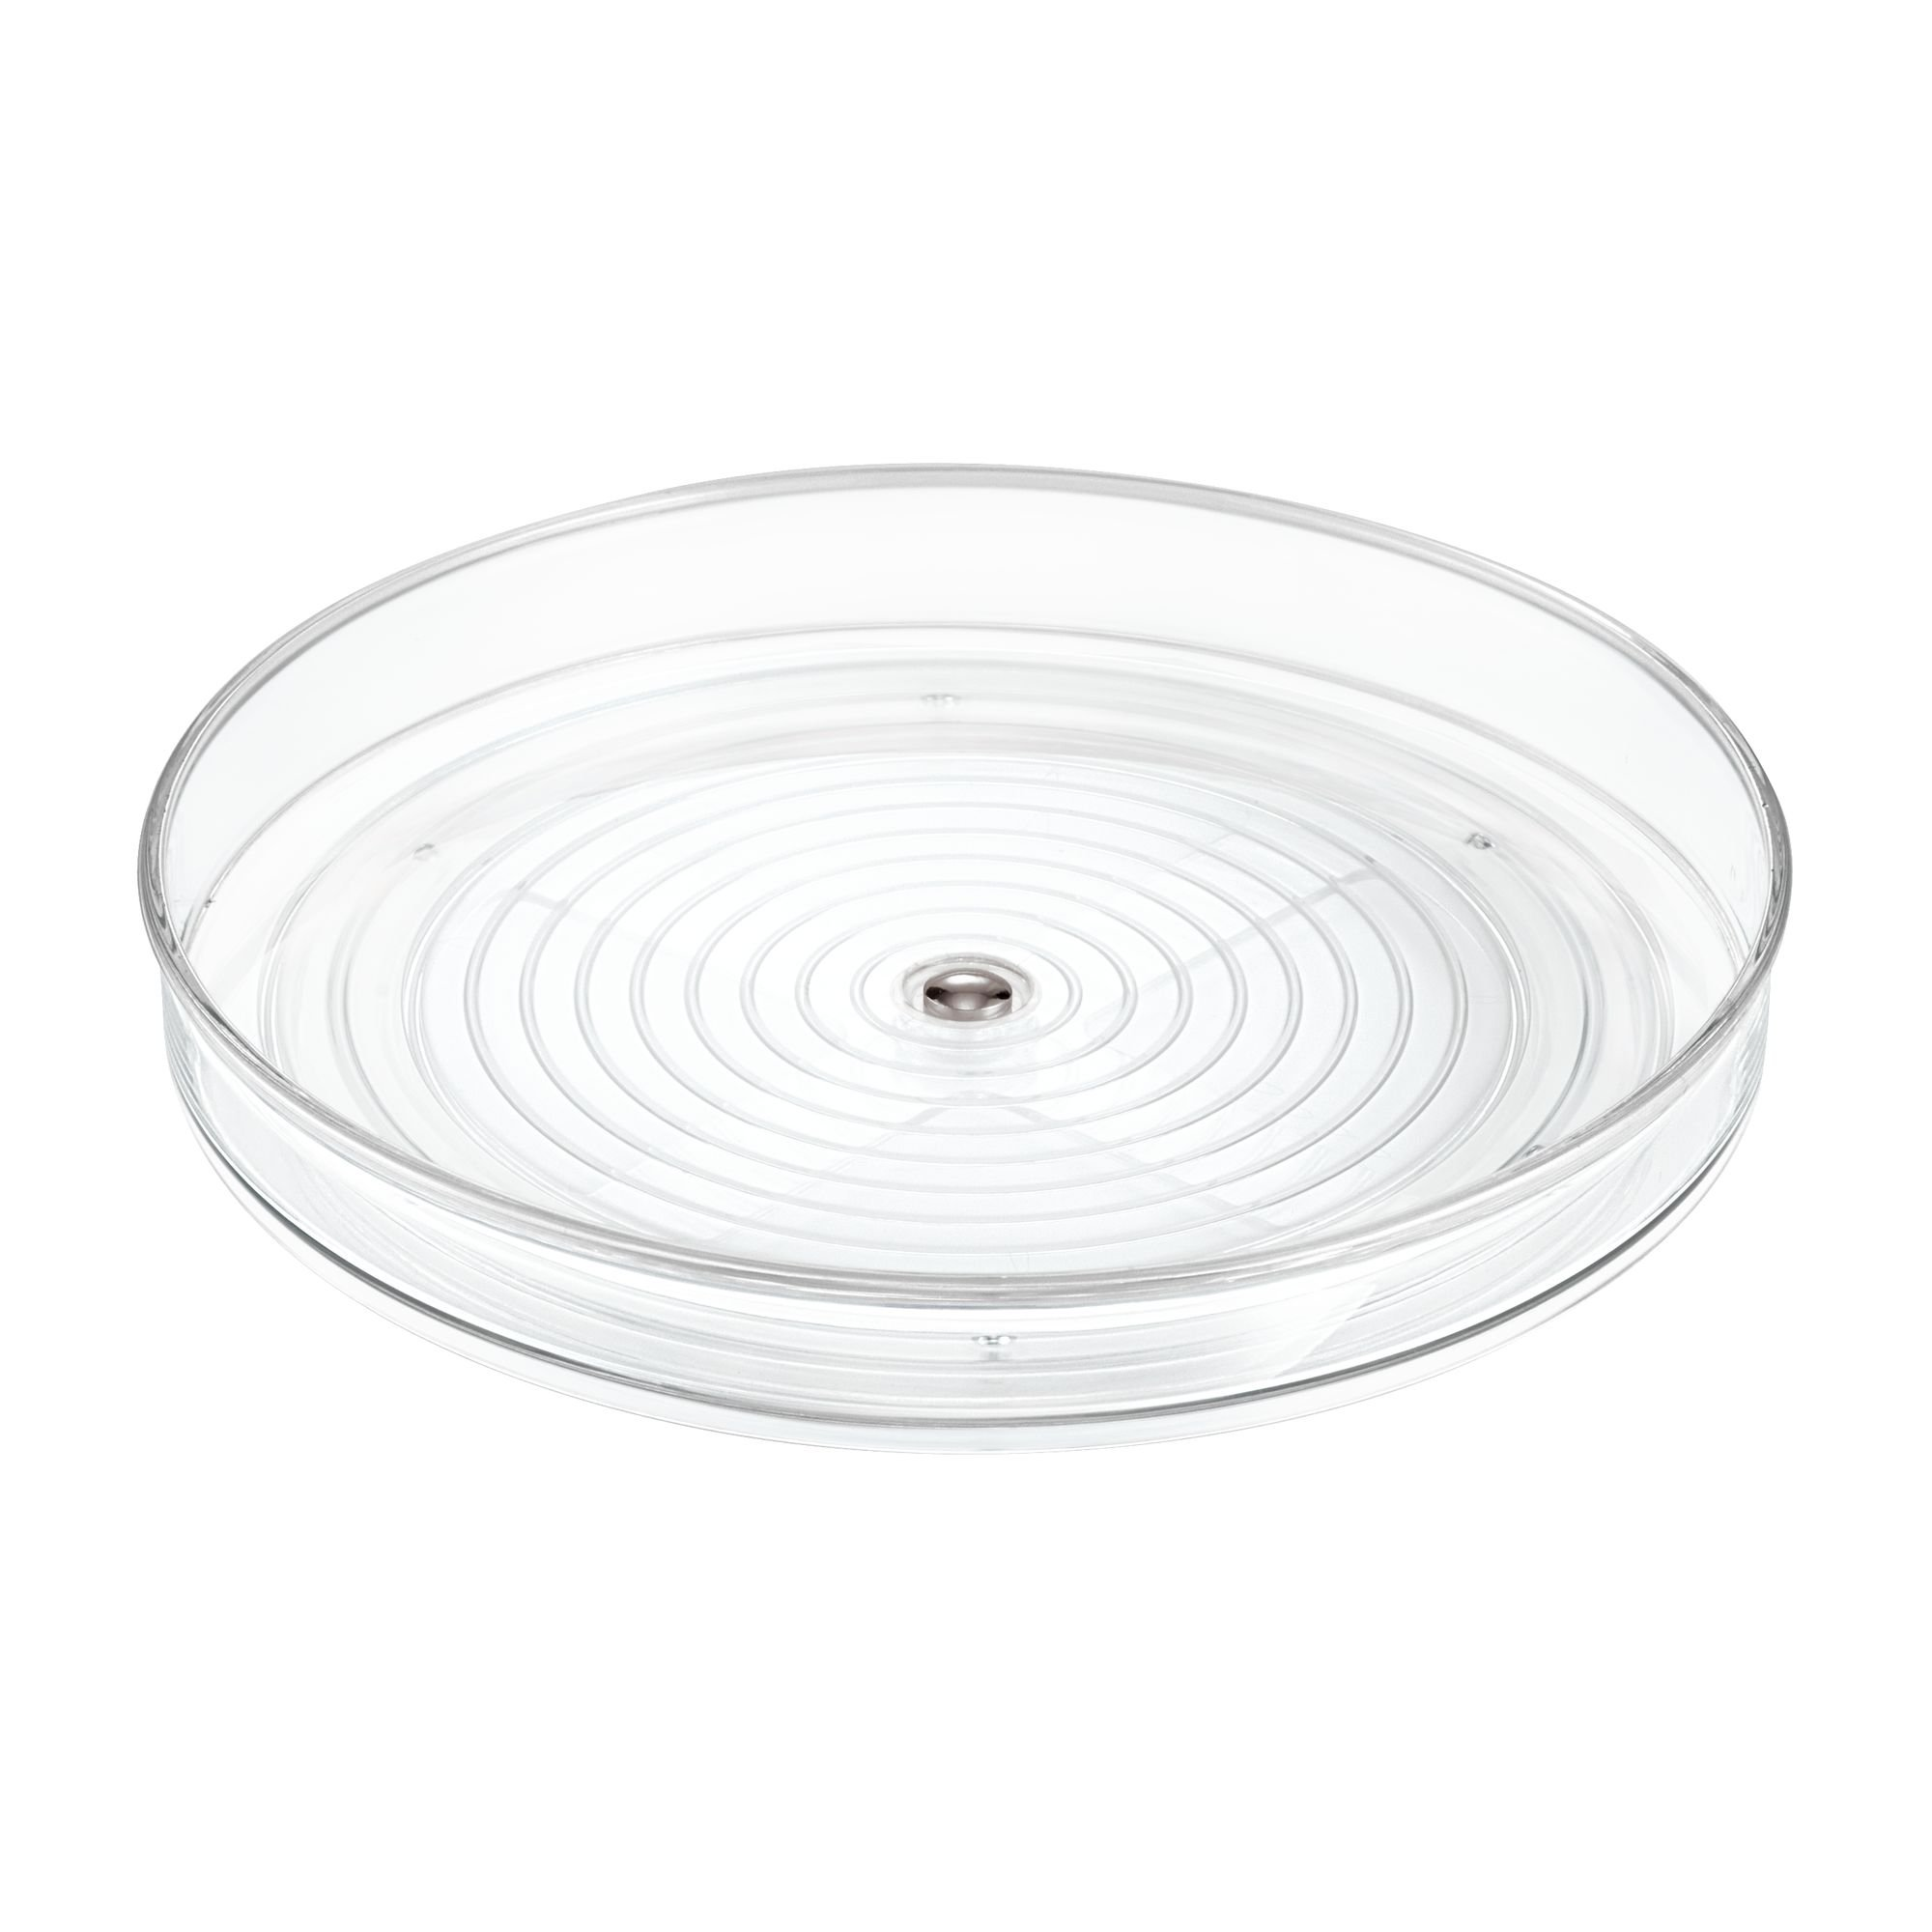 pin turntable square susan with lb everbilt kitchen in lazy rating load